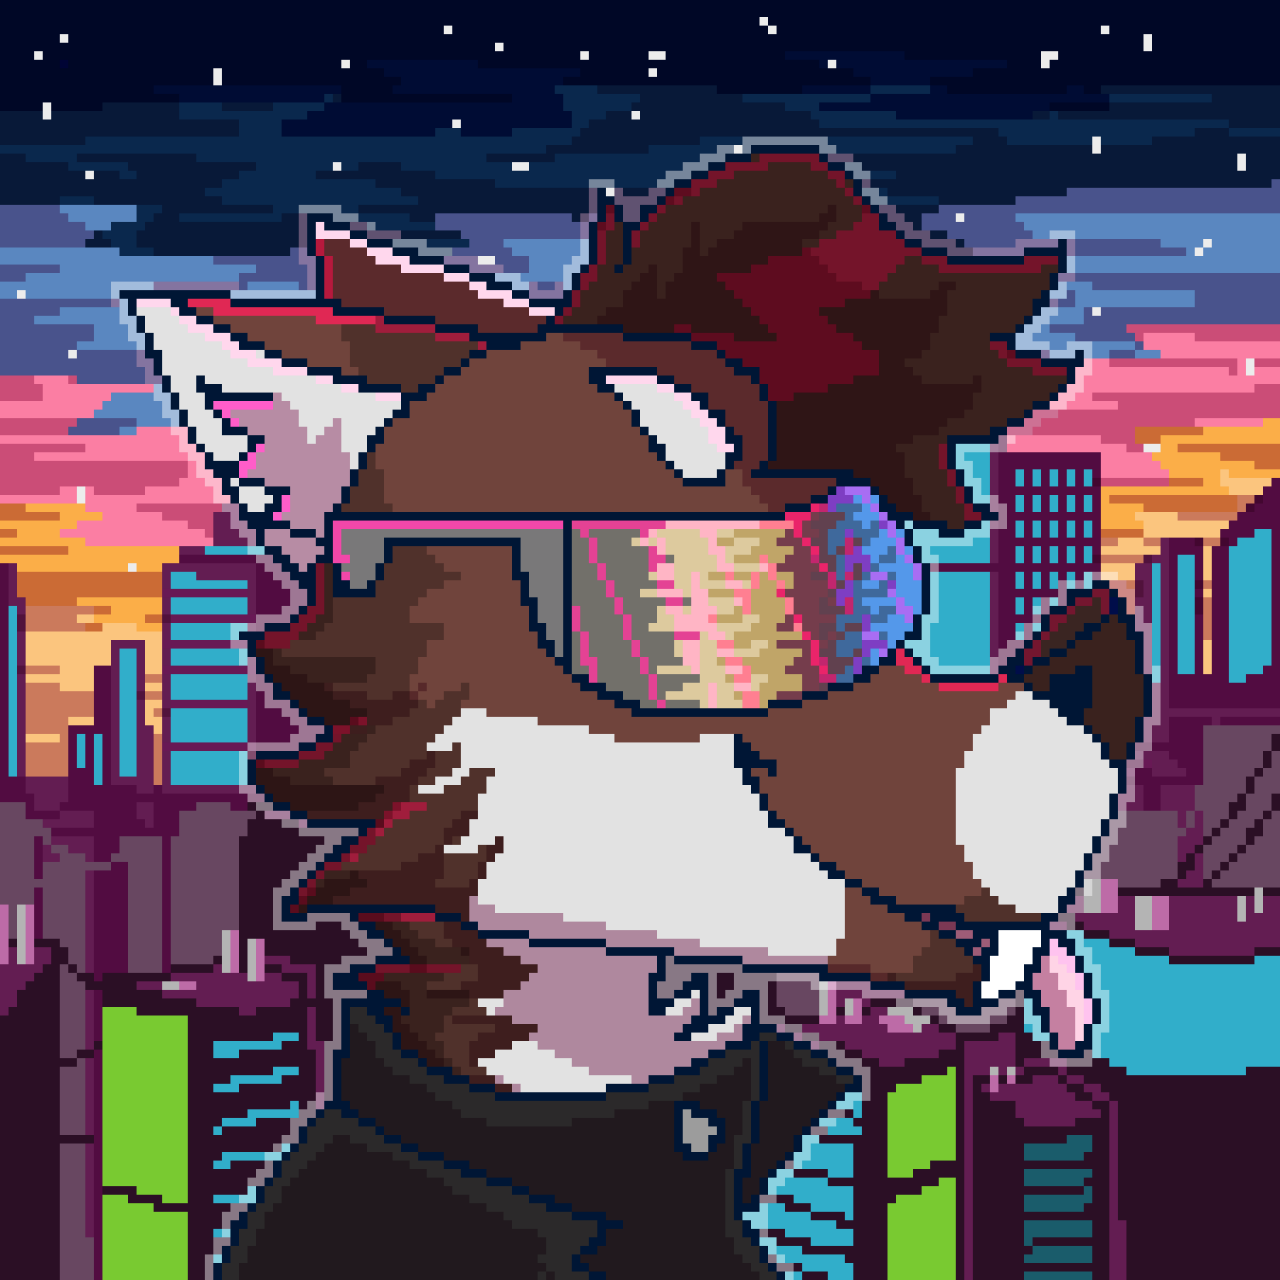 icon by Quasar on Snouts.Online